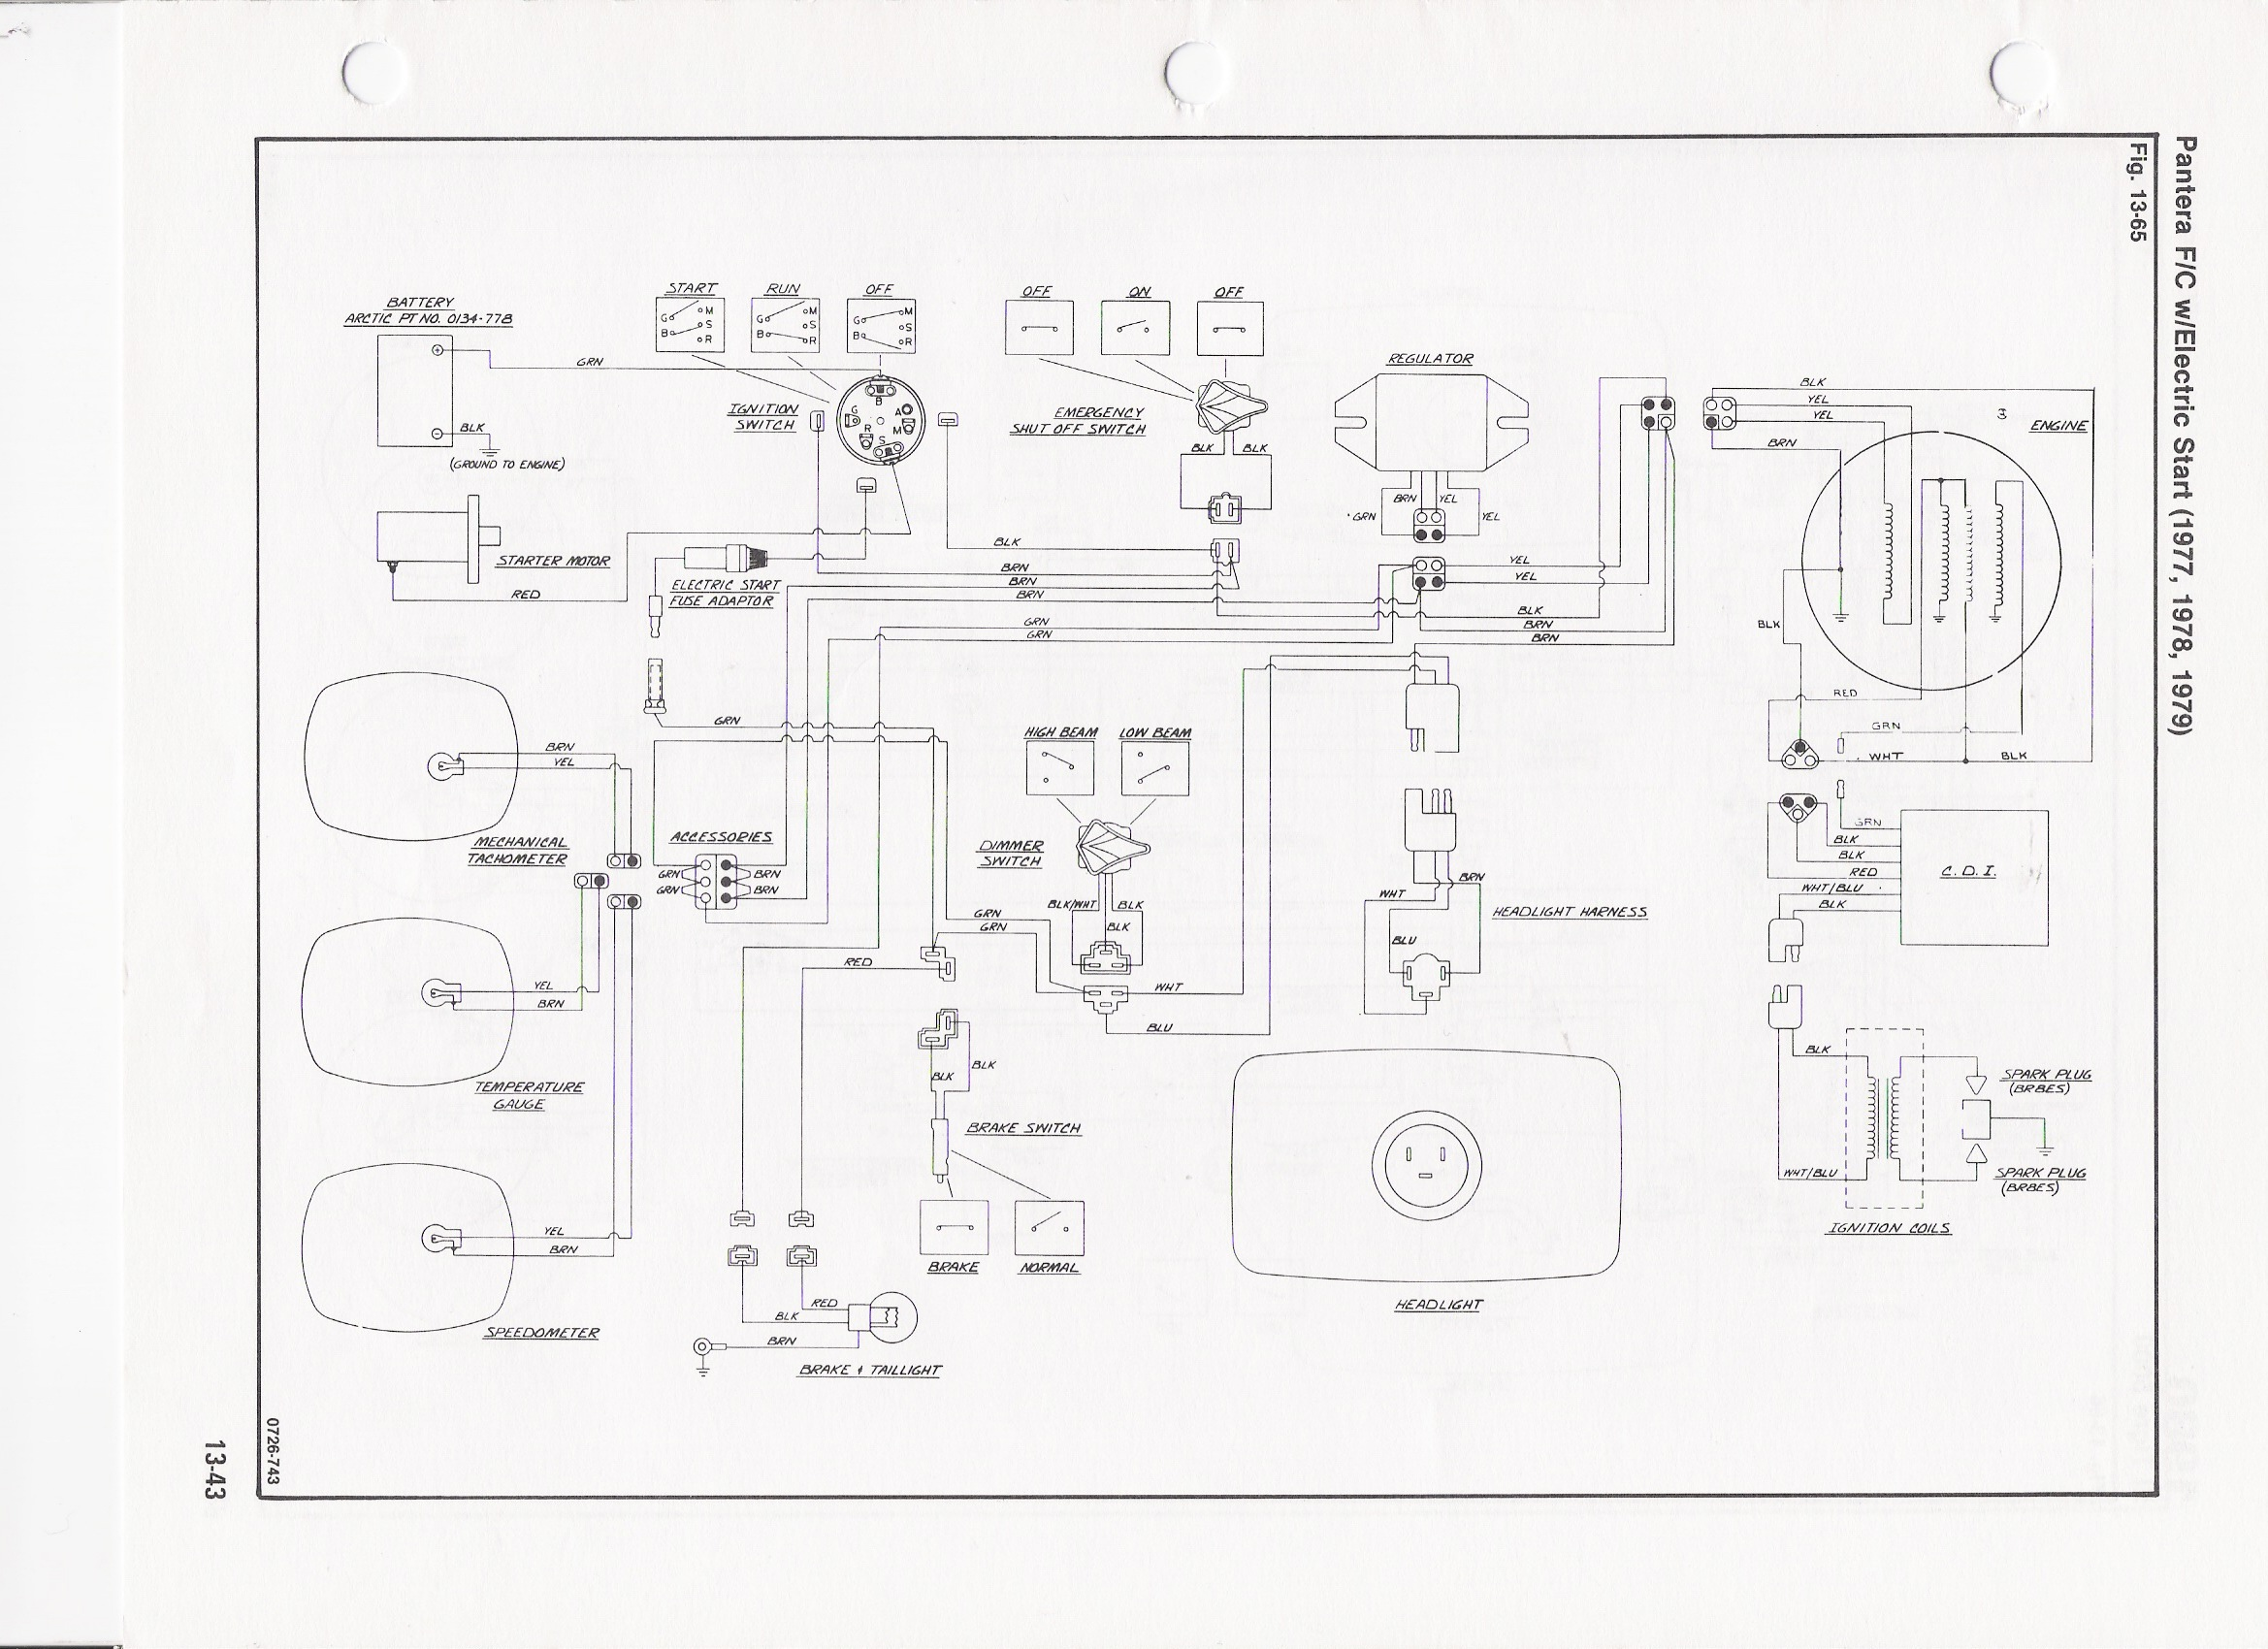 DIAGRAM] Arctic Cat Jag Wiring Diagram For 1979 FULL Version HD Quality For  1979 - DESIGN-DIAGRAM.HULALACLUB.IT design-diagram.hulalaclub.it